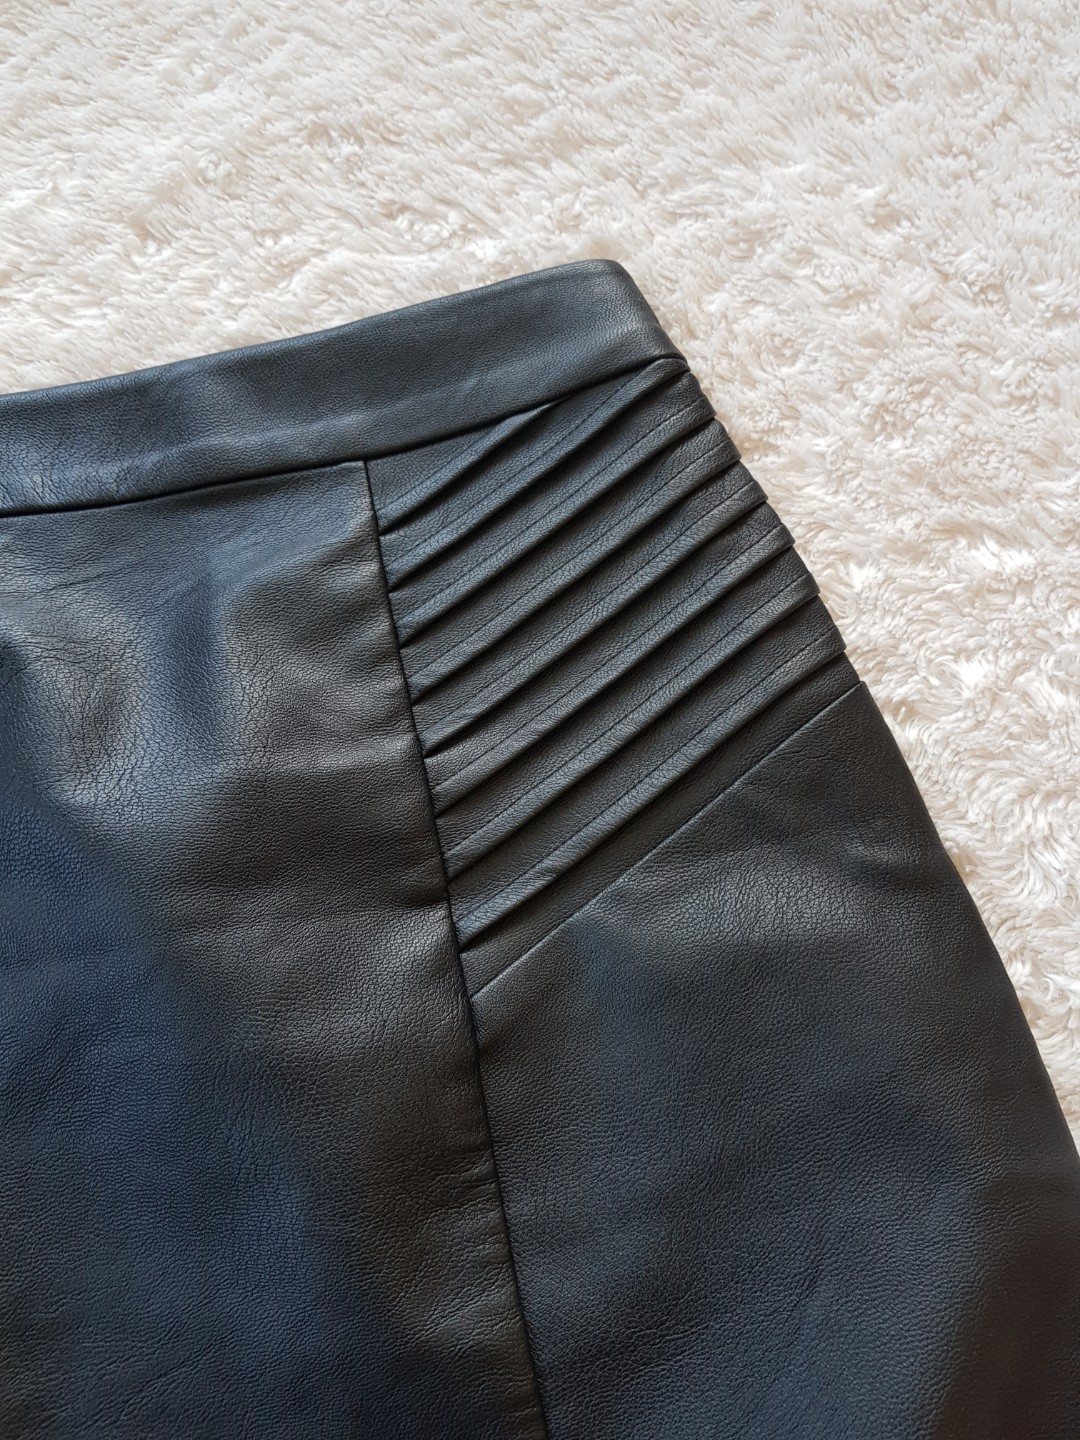 NEW - Skin Tight Leather Skirt!